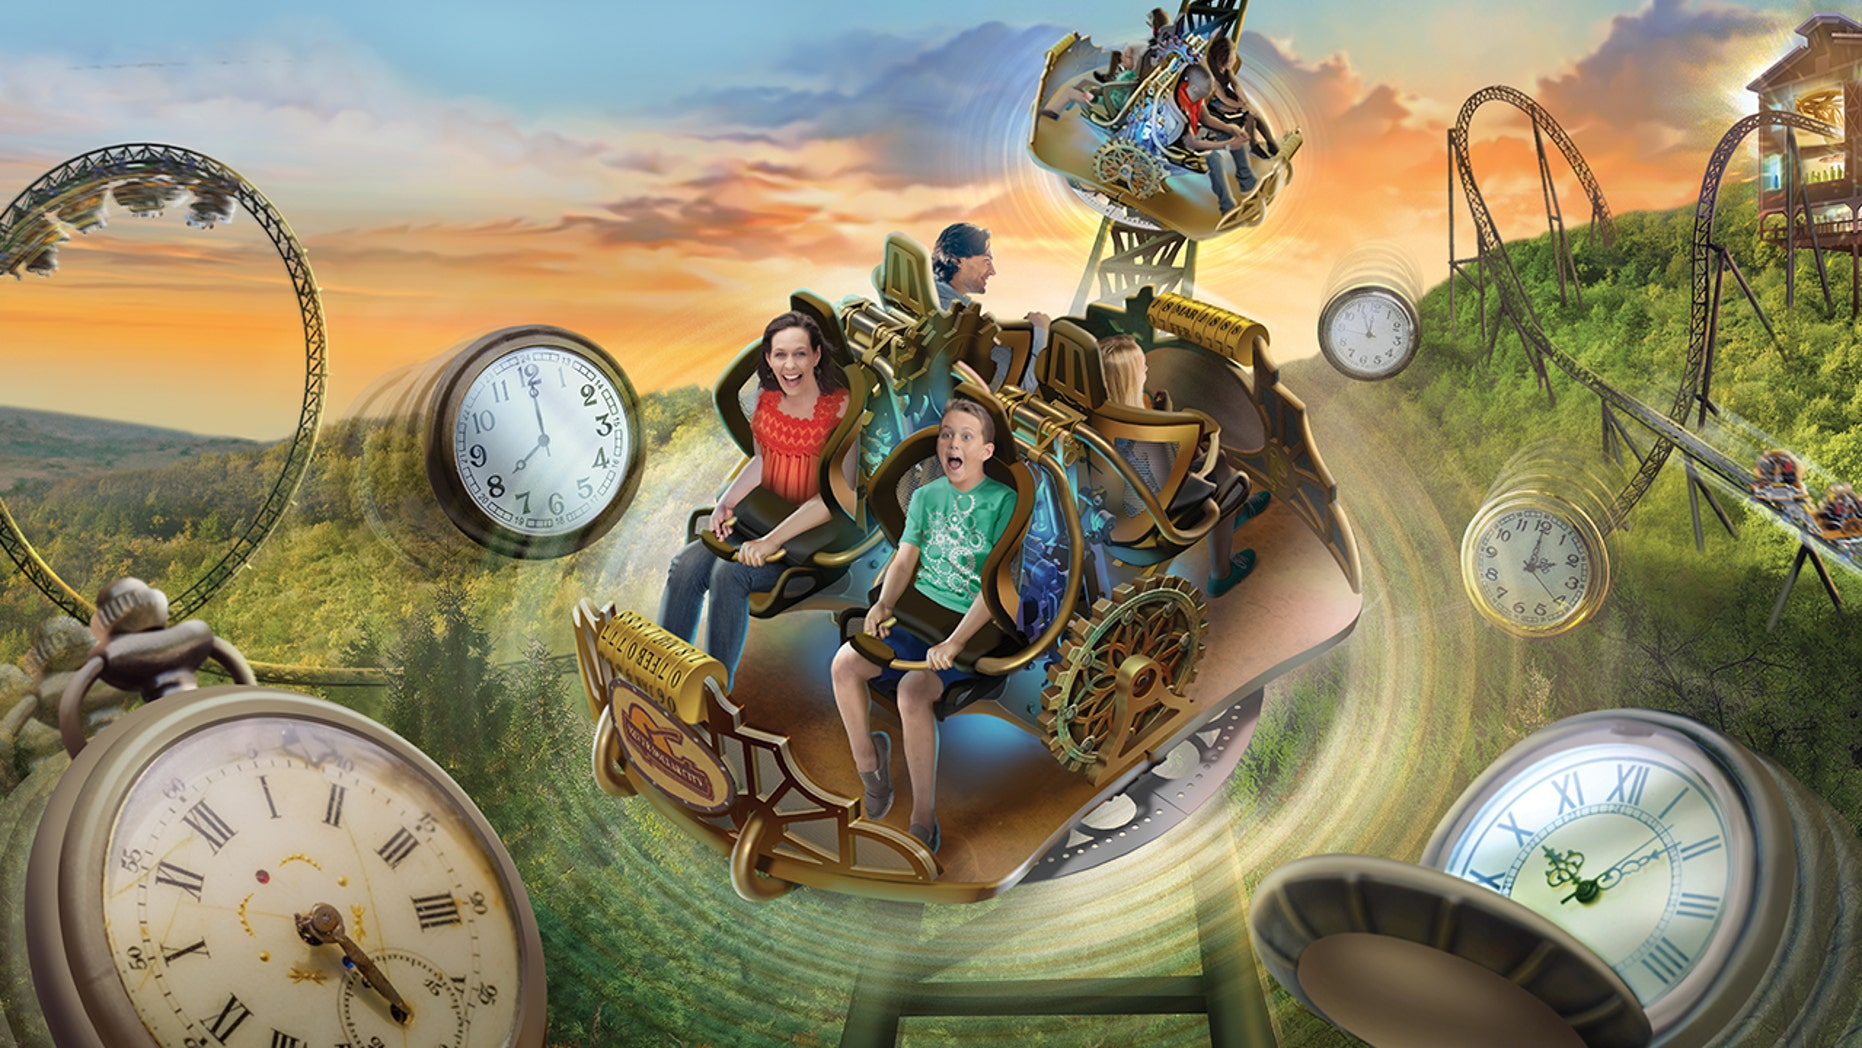 Missouri's new Time Traveler is set to be the world's steepest, fastest and tallest spinning coaster in the world.